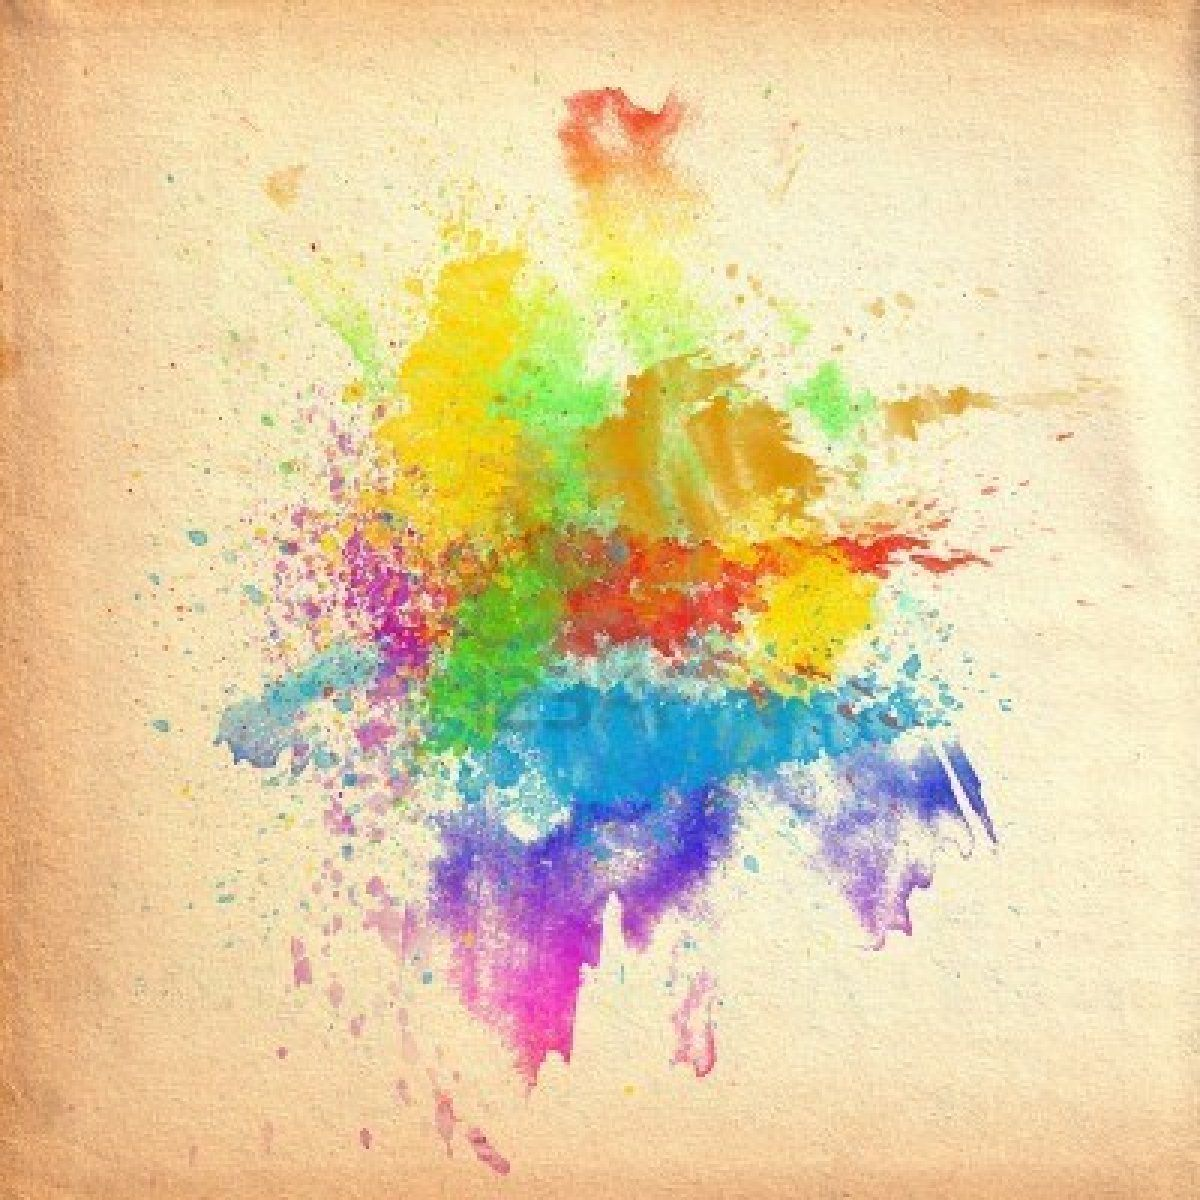 Watercolor Tattoo Abstract Watercolor Paint Background Watercolor